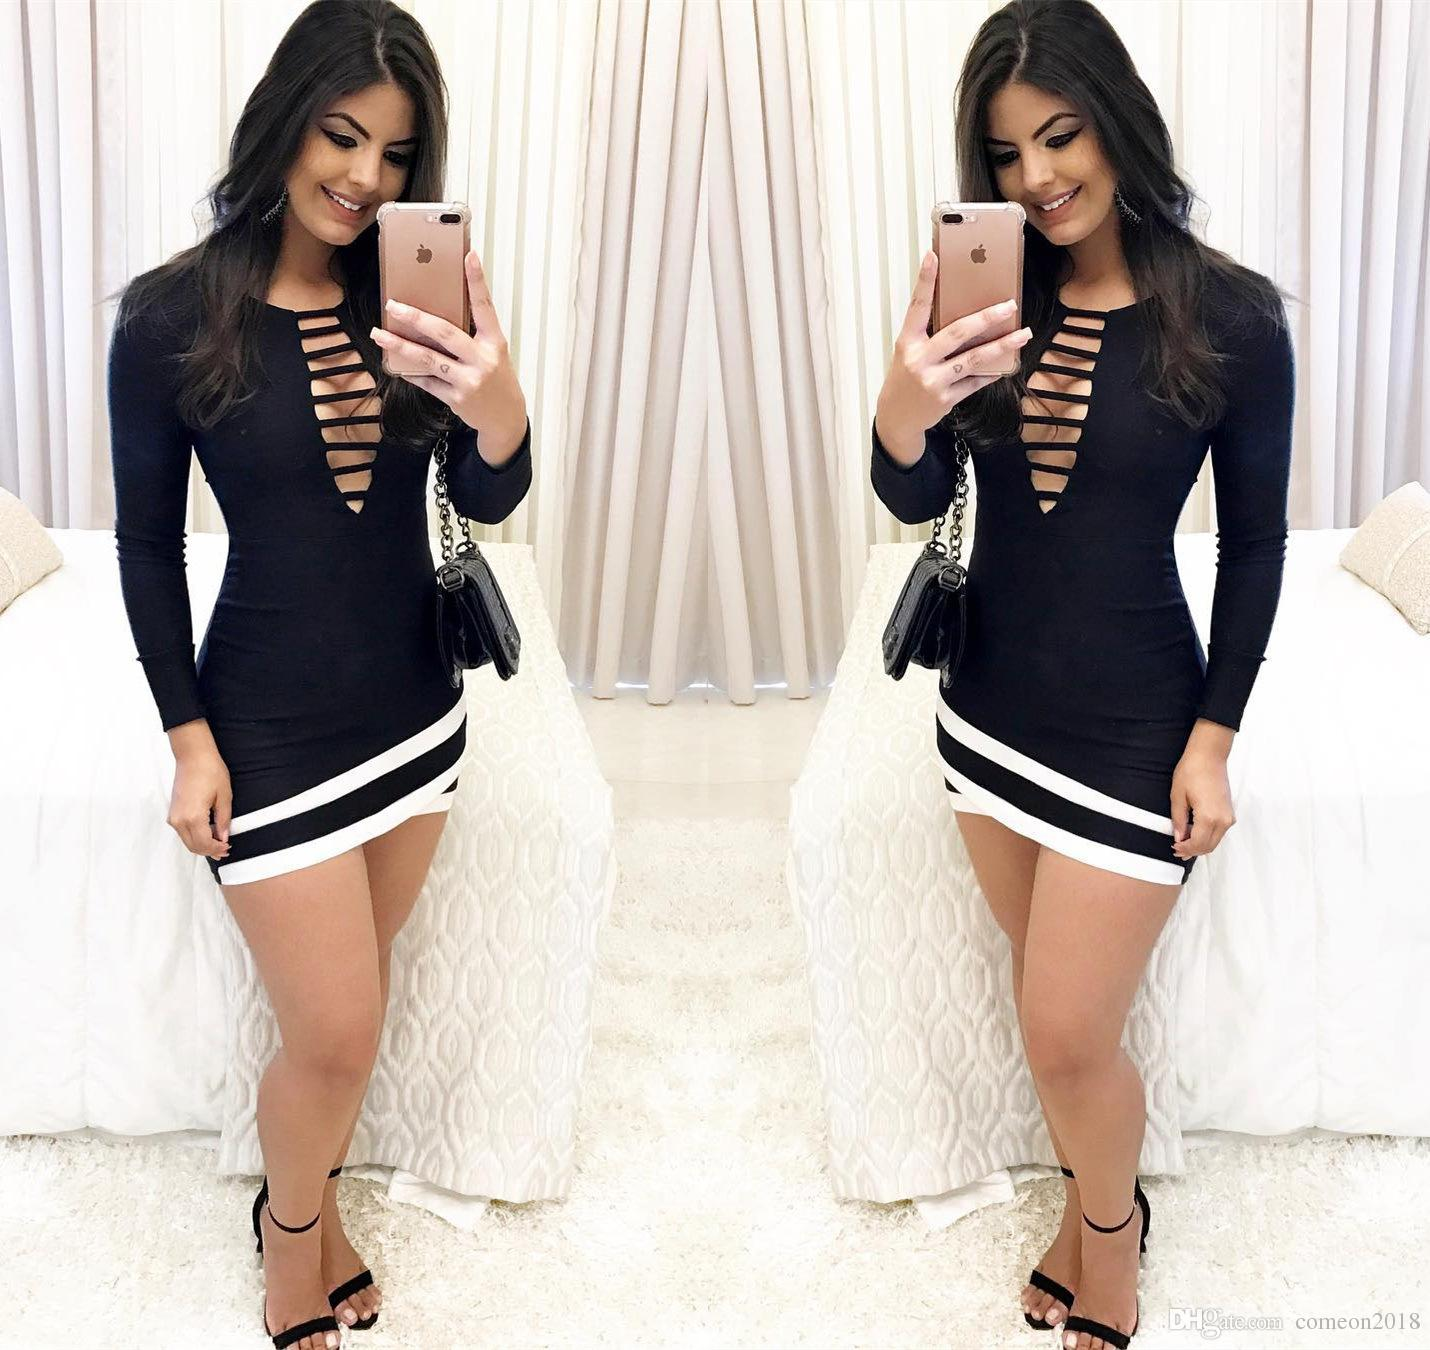 224214edd26 Sexy Night Club Black Patchwork Tight Dresses for Women Exposed Breast Long  Sleeve Hollow-out Europe Style Casual Dresses Night Club Dresses Sexy Tight  ...